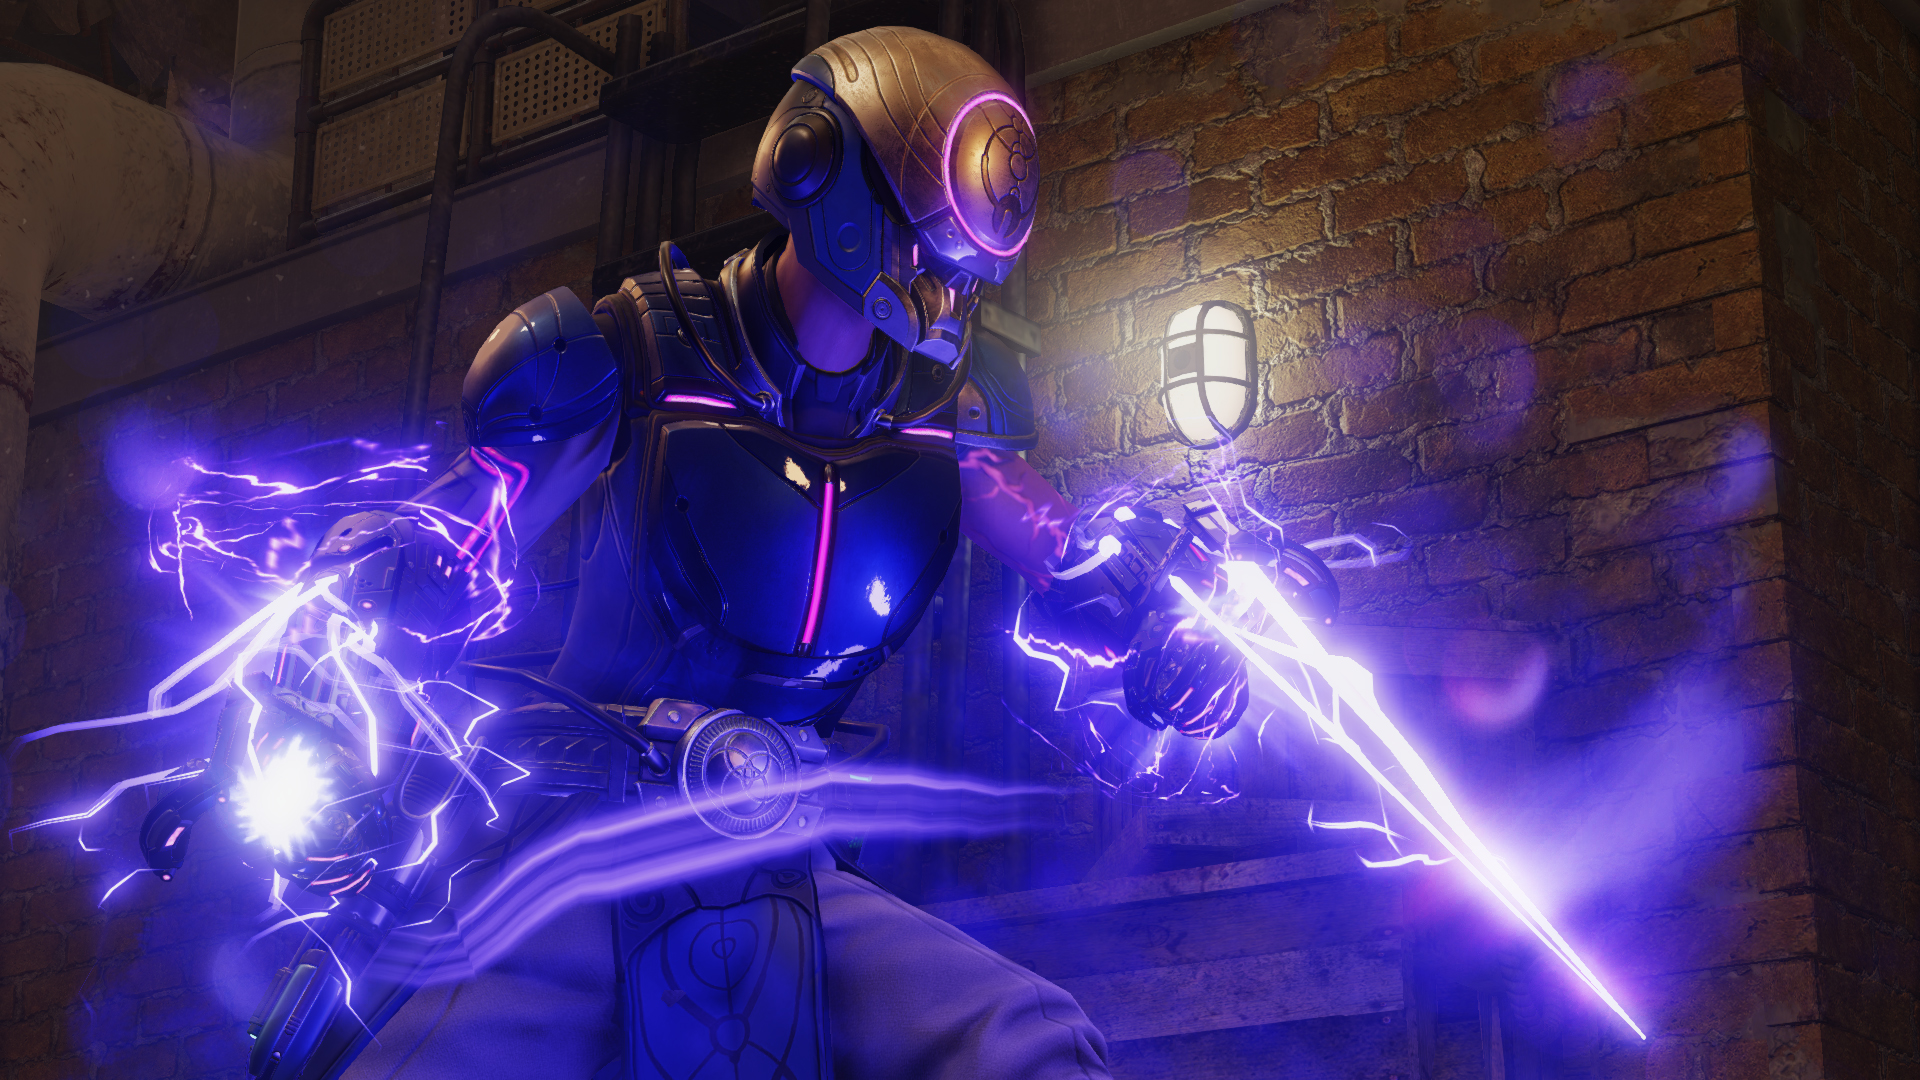 Heavily Reliant On Psionic Abilities And Armed With Killer Glowing Psychic Blades Theyre All About Rushing Directly Into Melee Range